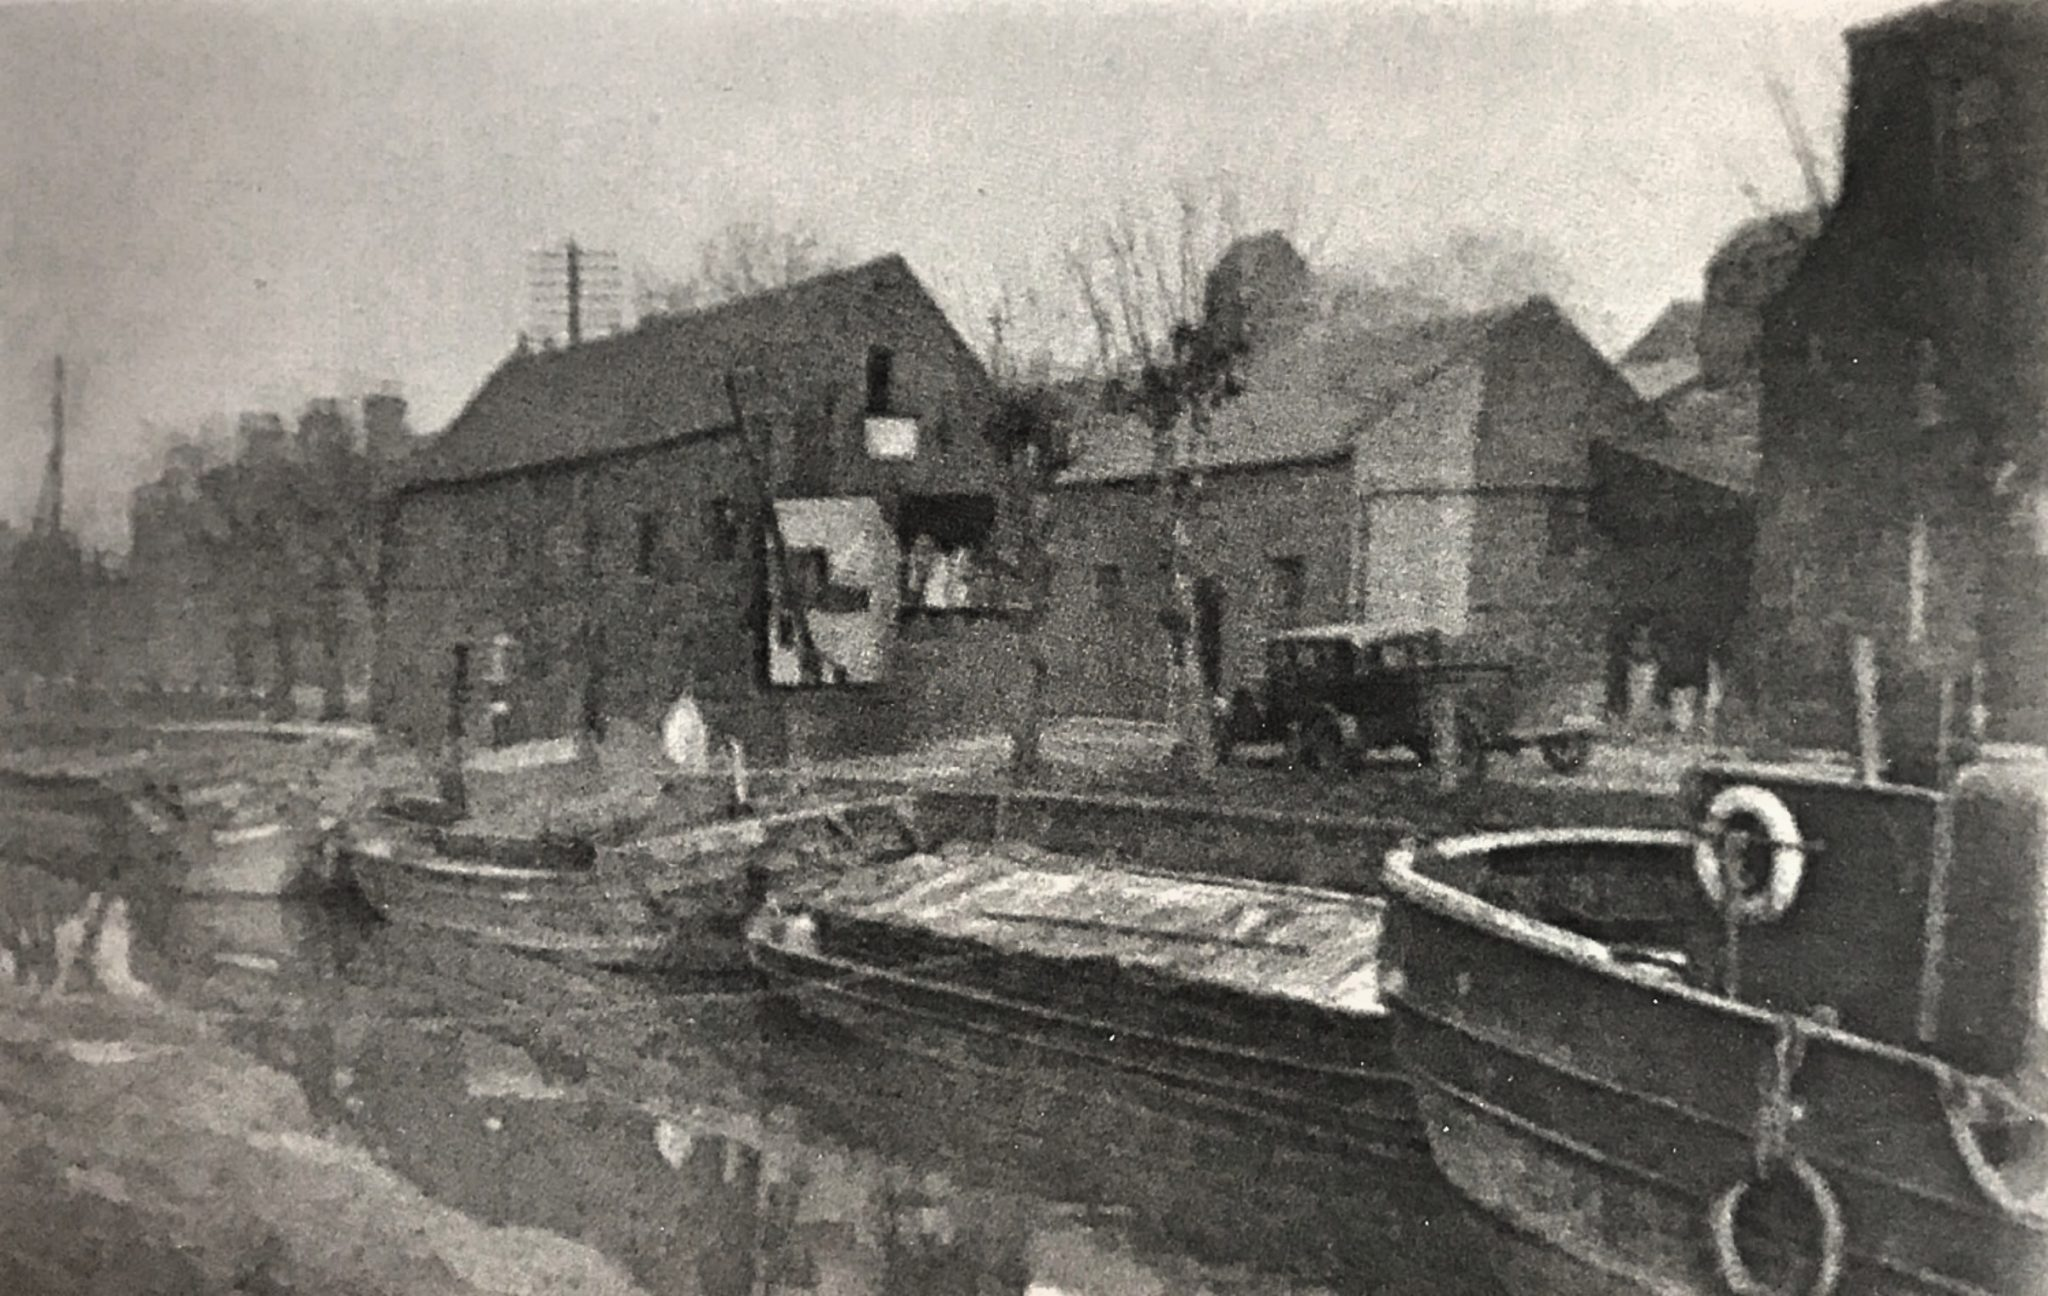 Birch's Wharf early 1900's